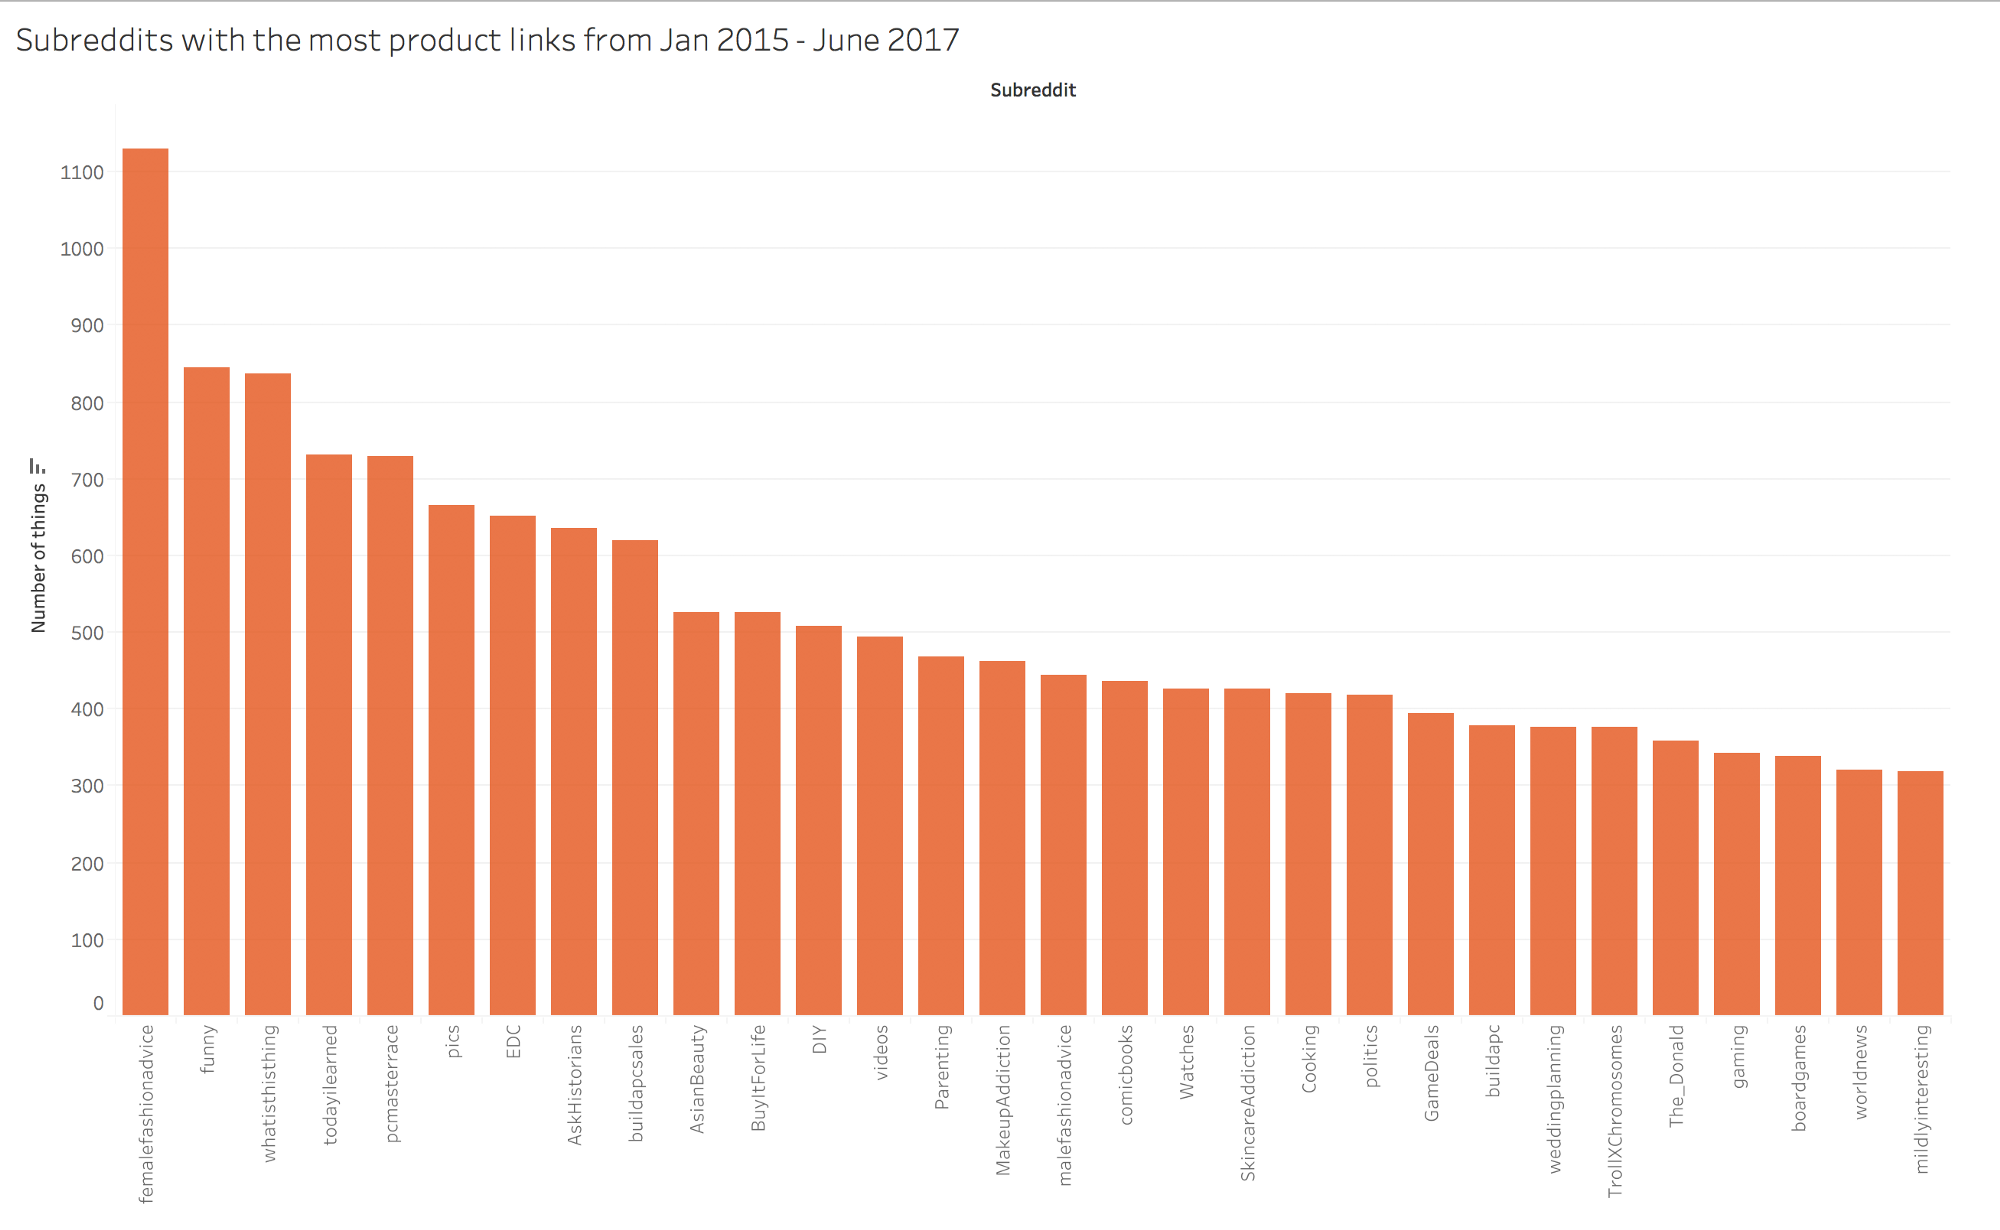 Subreddits with the most product links